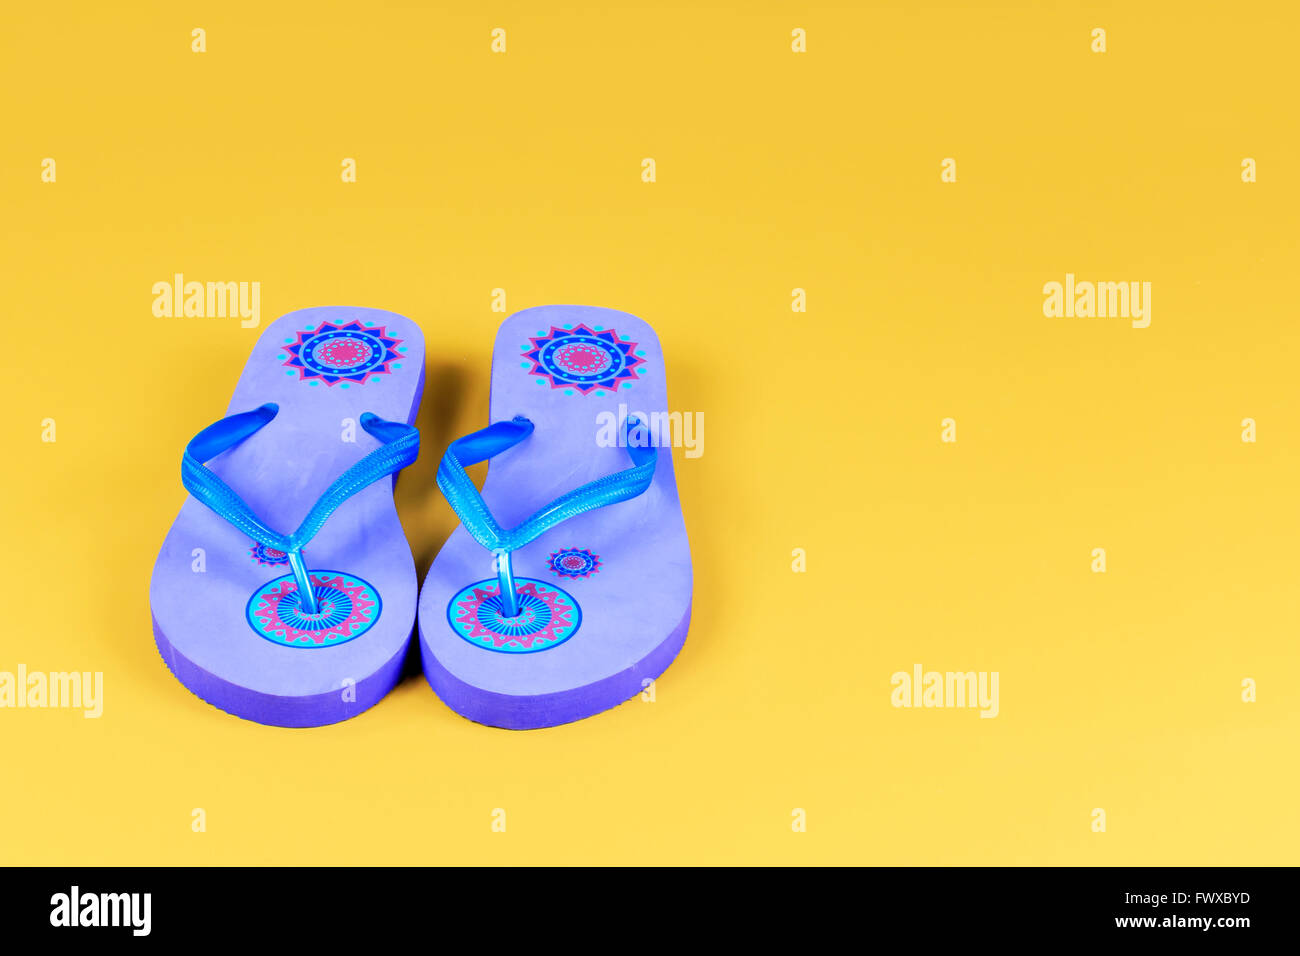 c3a1caef4 Yellow Sandals Stock Photos   Yellow Sandals Stock Images - Alamy